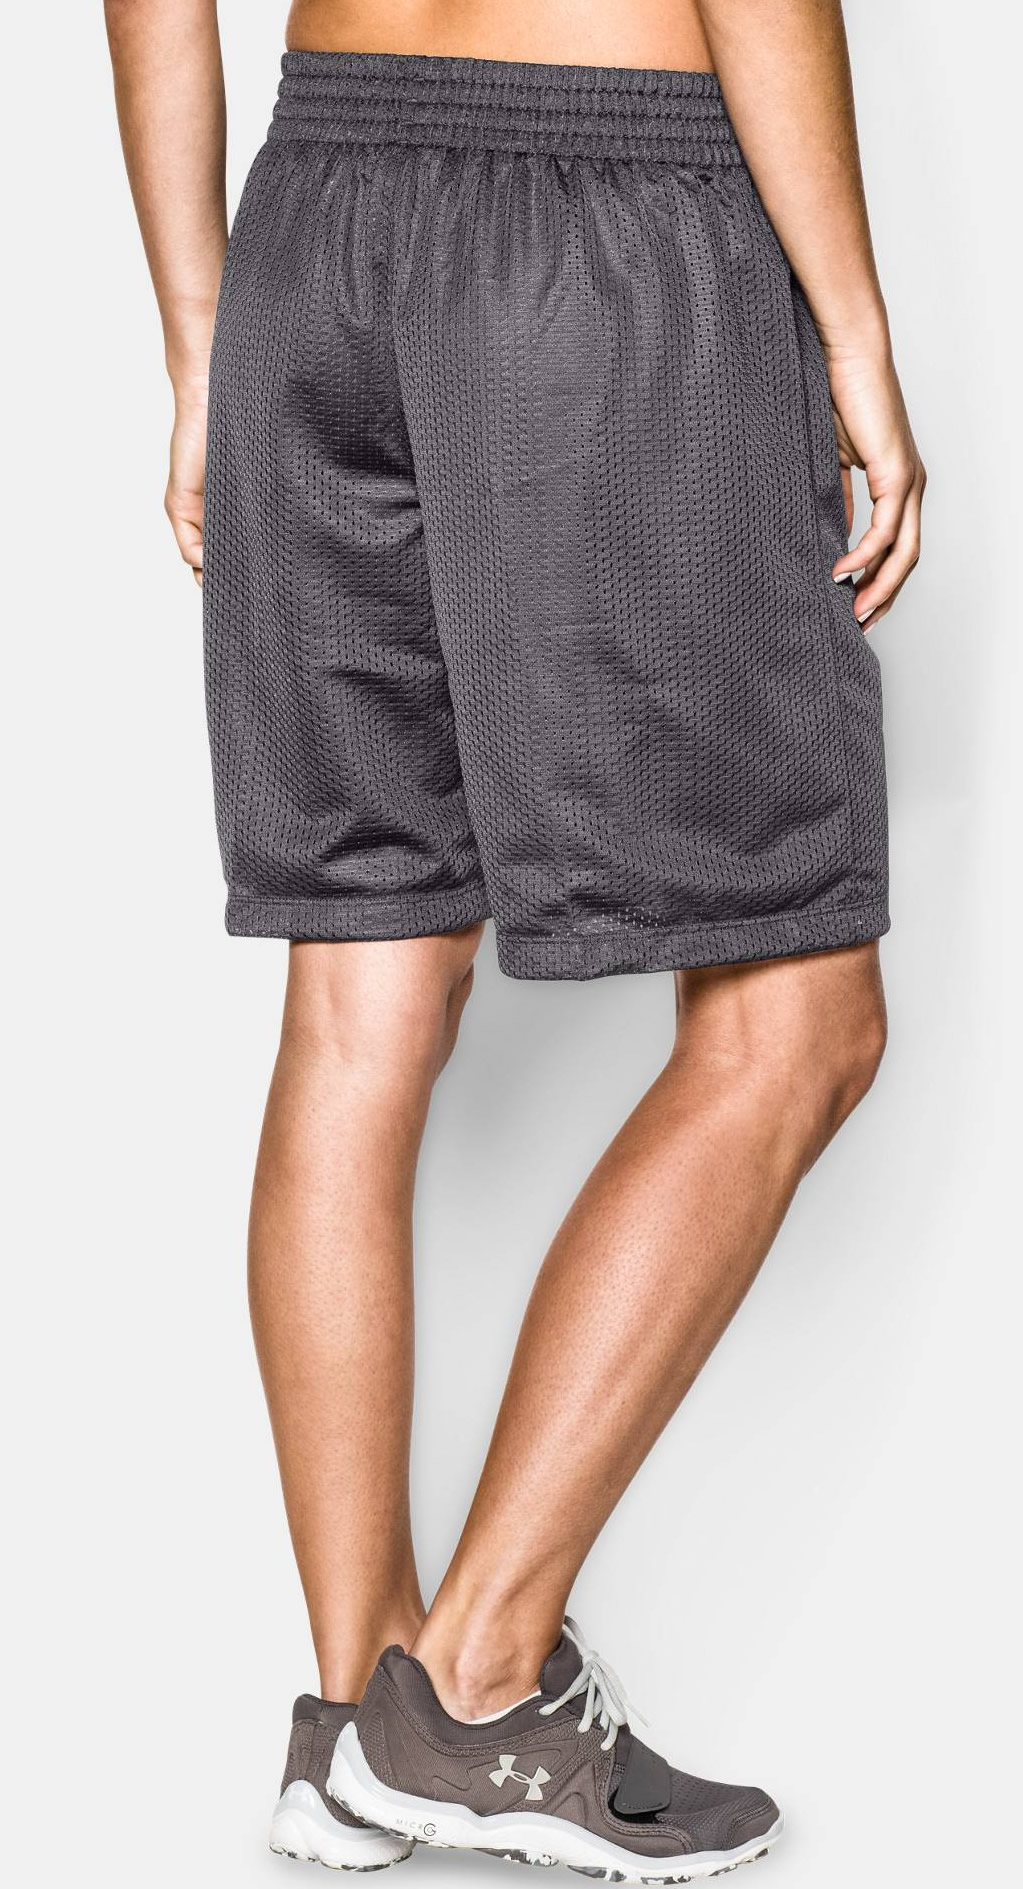 Women's Basketball Shorts by Under Armour